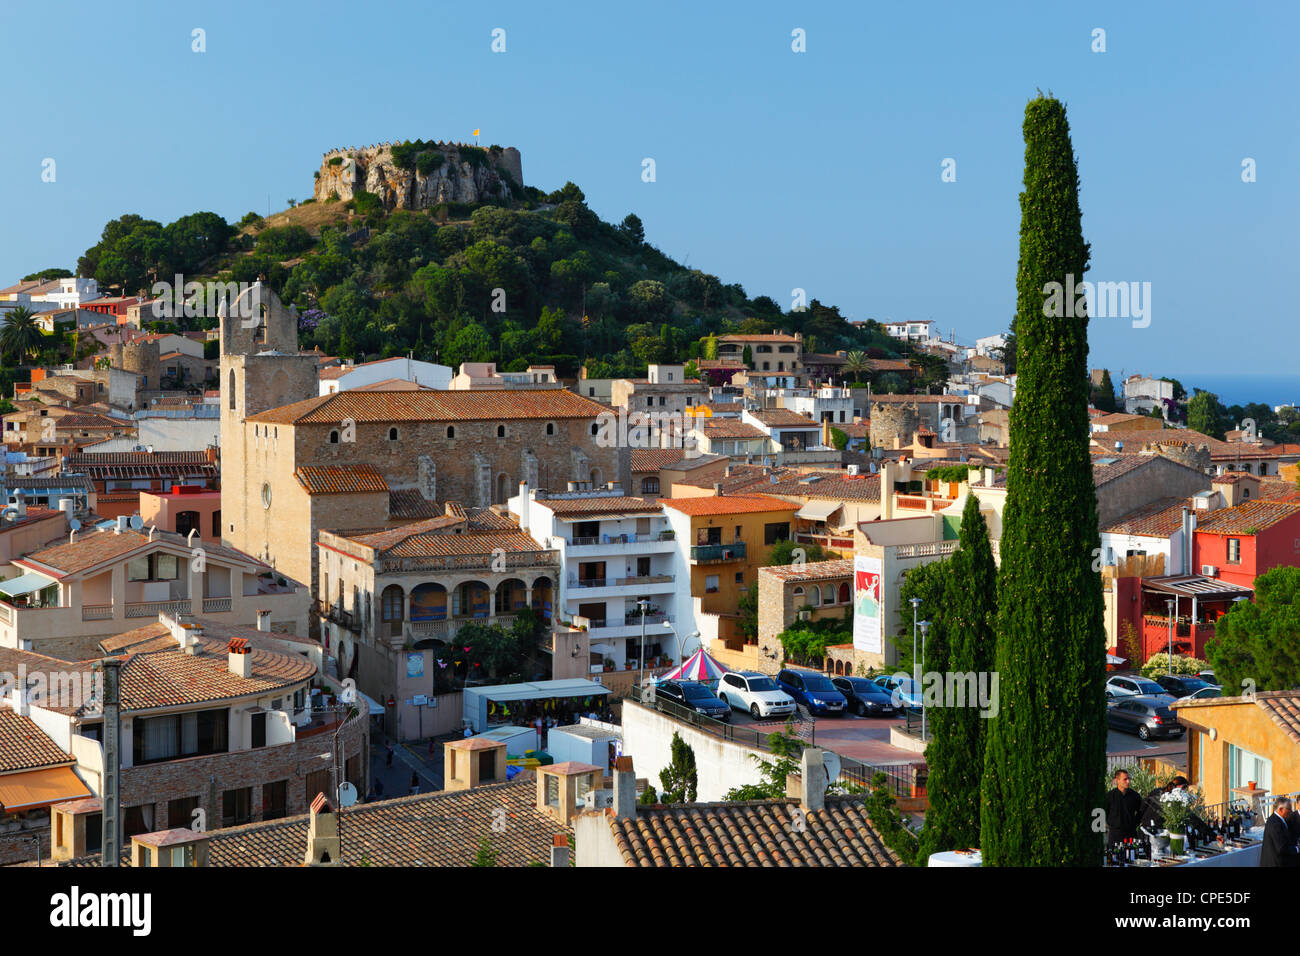 Ruined castle above old town, Begur, Costa Brava, Catalonia, Spain, Europe - Stock Image